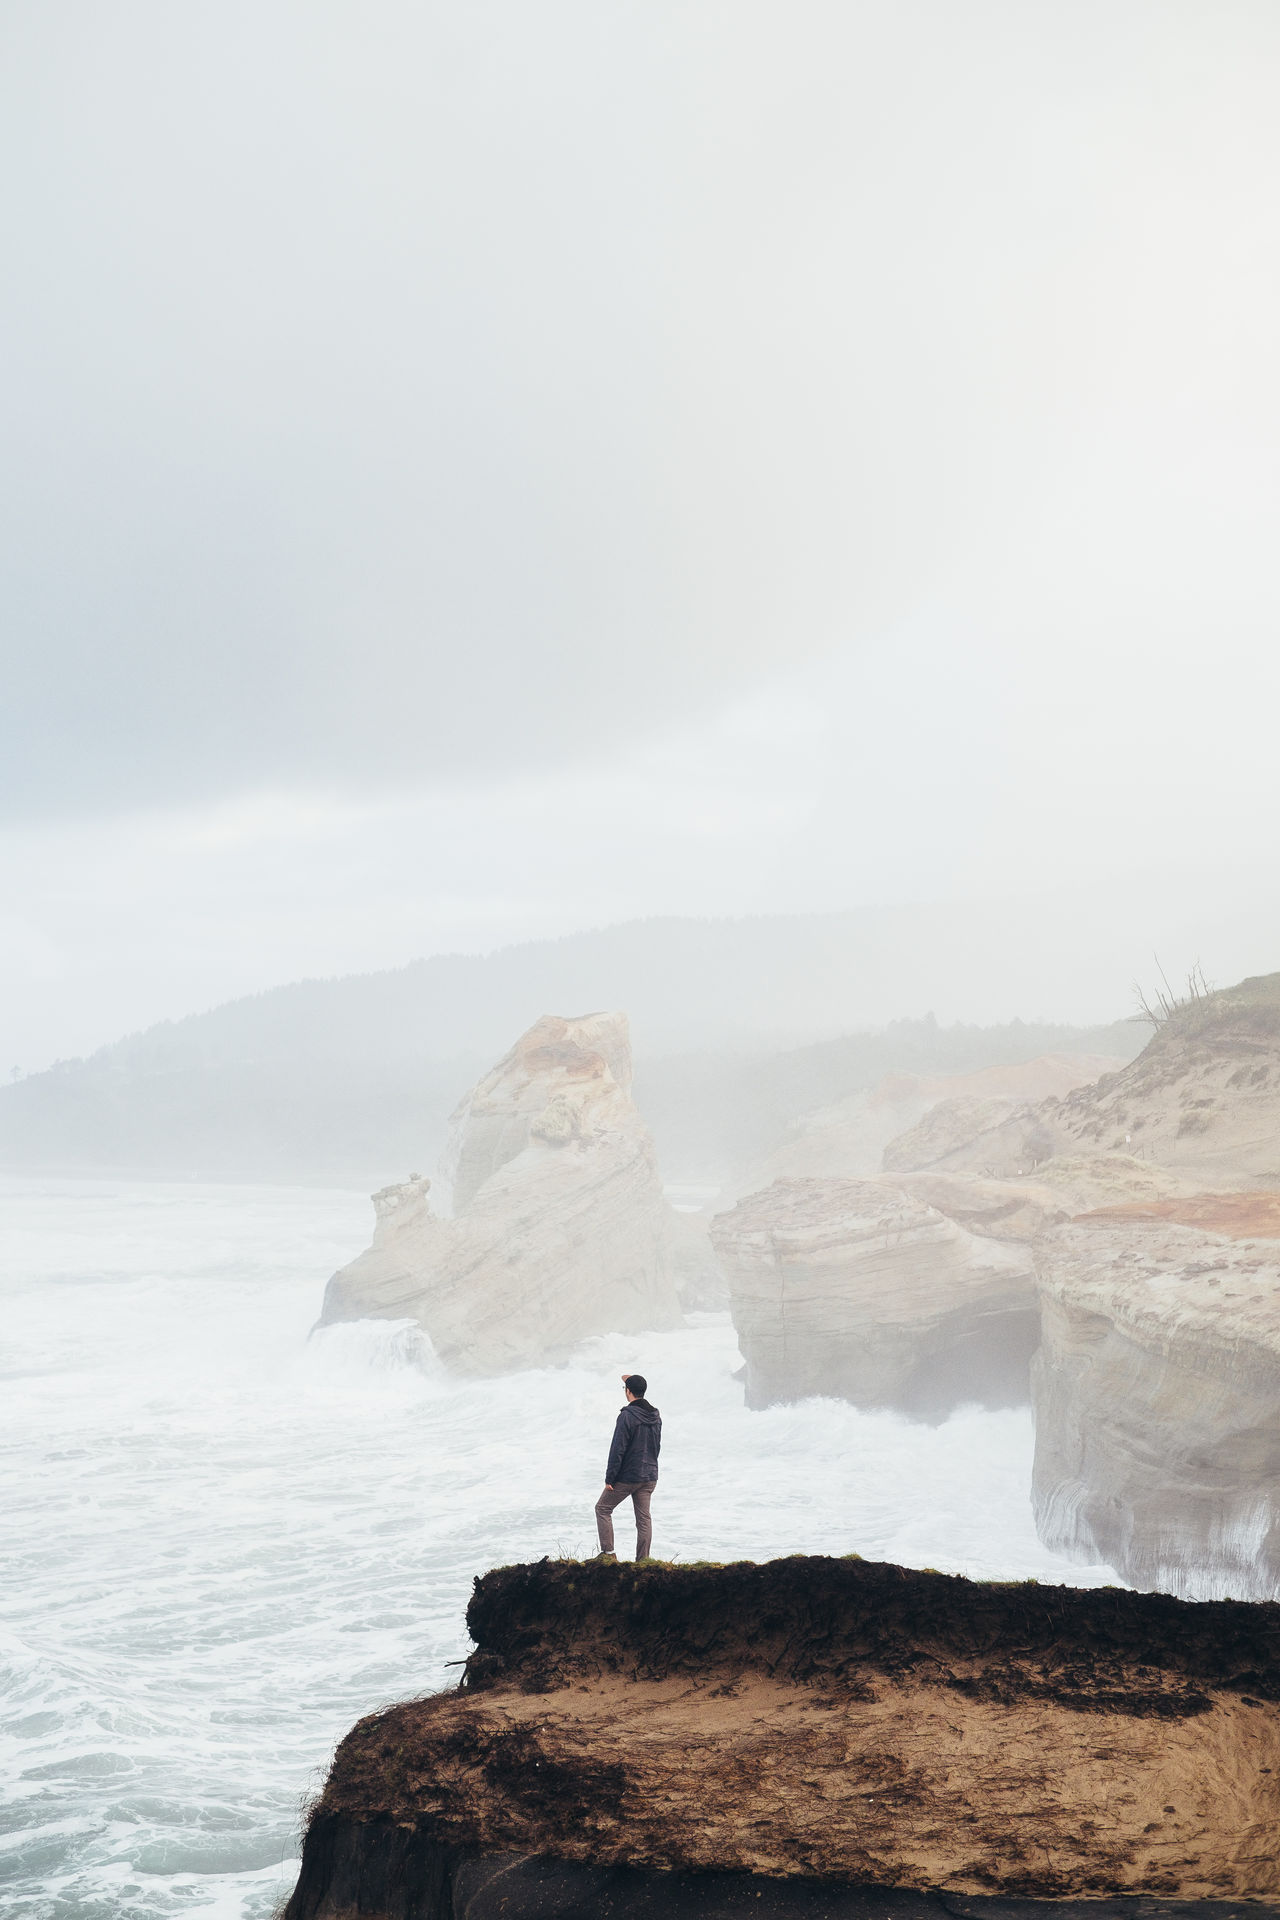 The Rush One Man Only One Person Standing Silhouette Water Nature Full Length Beauty In Nature PNW Outdoors Scenics The Great Outdoors - 2017 EyeEm Awards Tranquility Travel Destinations Cape Kiwanda Oregon Coast Adventure Sunrise